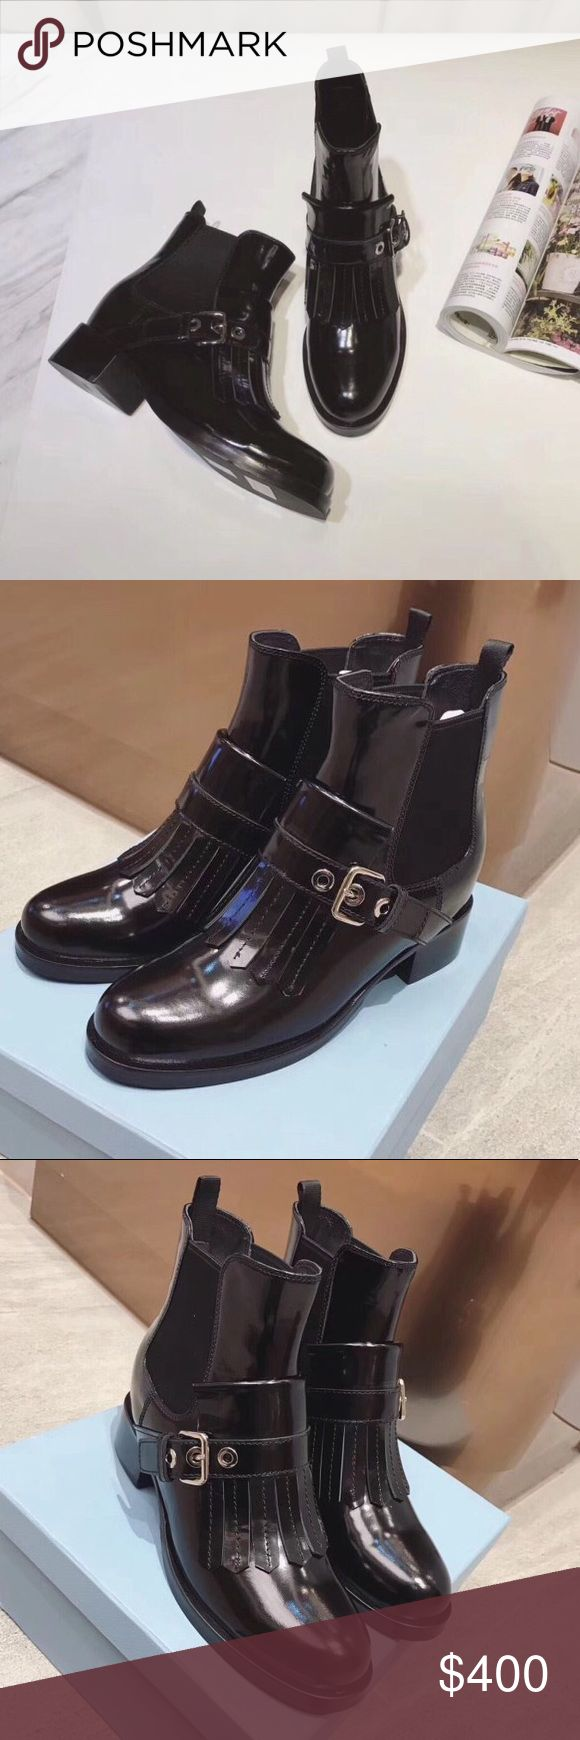 NEW Prada Tassel Boots Brand new. No box. Patent leather. Prada Shoes Ankle Boots & Booties